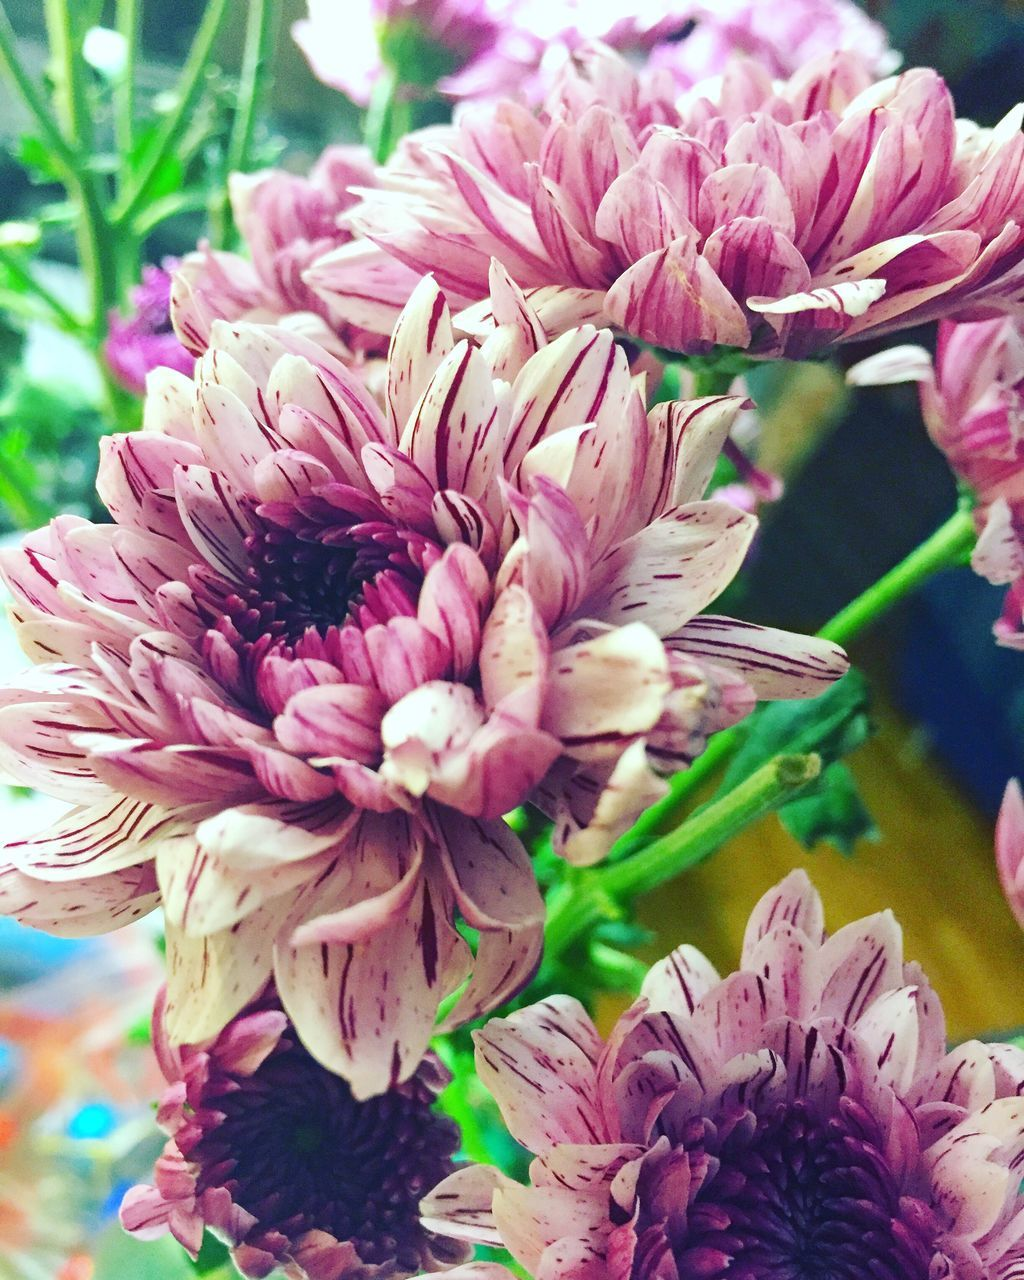 flower, fragility, petal, beauty in nature, freshness, flower head, nature, close-up, pink color, growth, no people, day, focus on foreground, bouquet, outdoors, plant, dahlia, florist